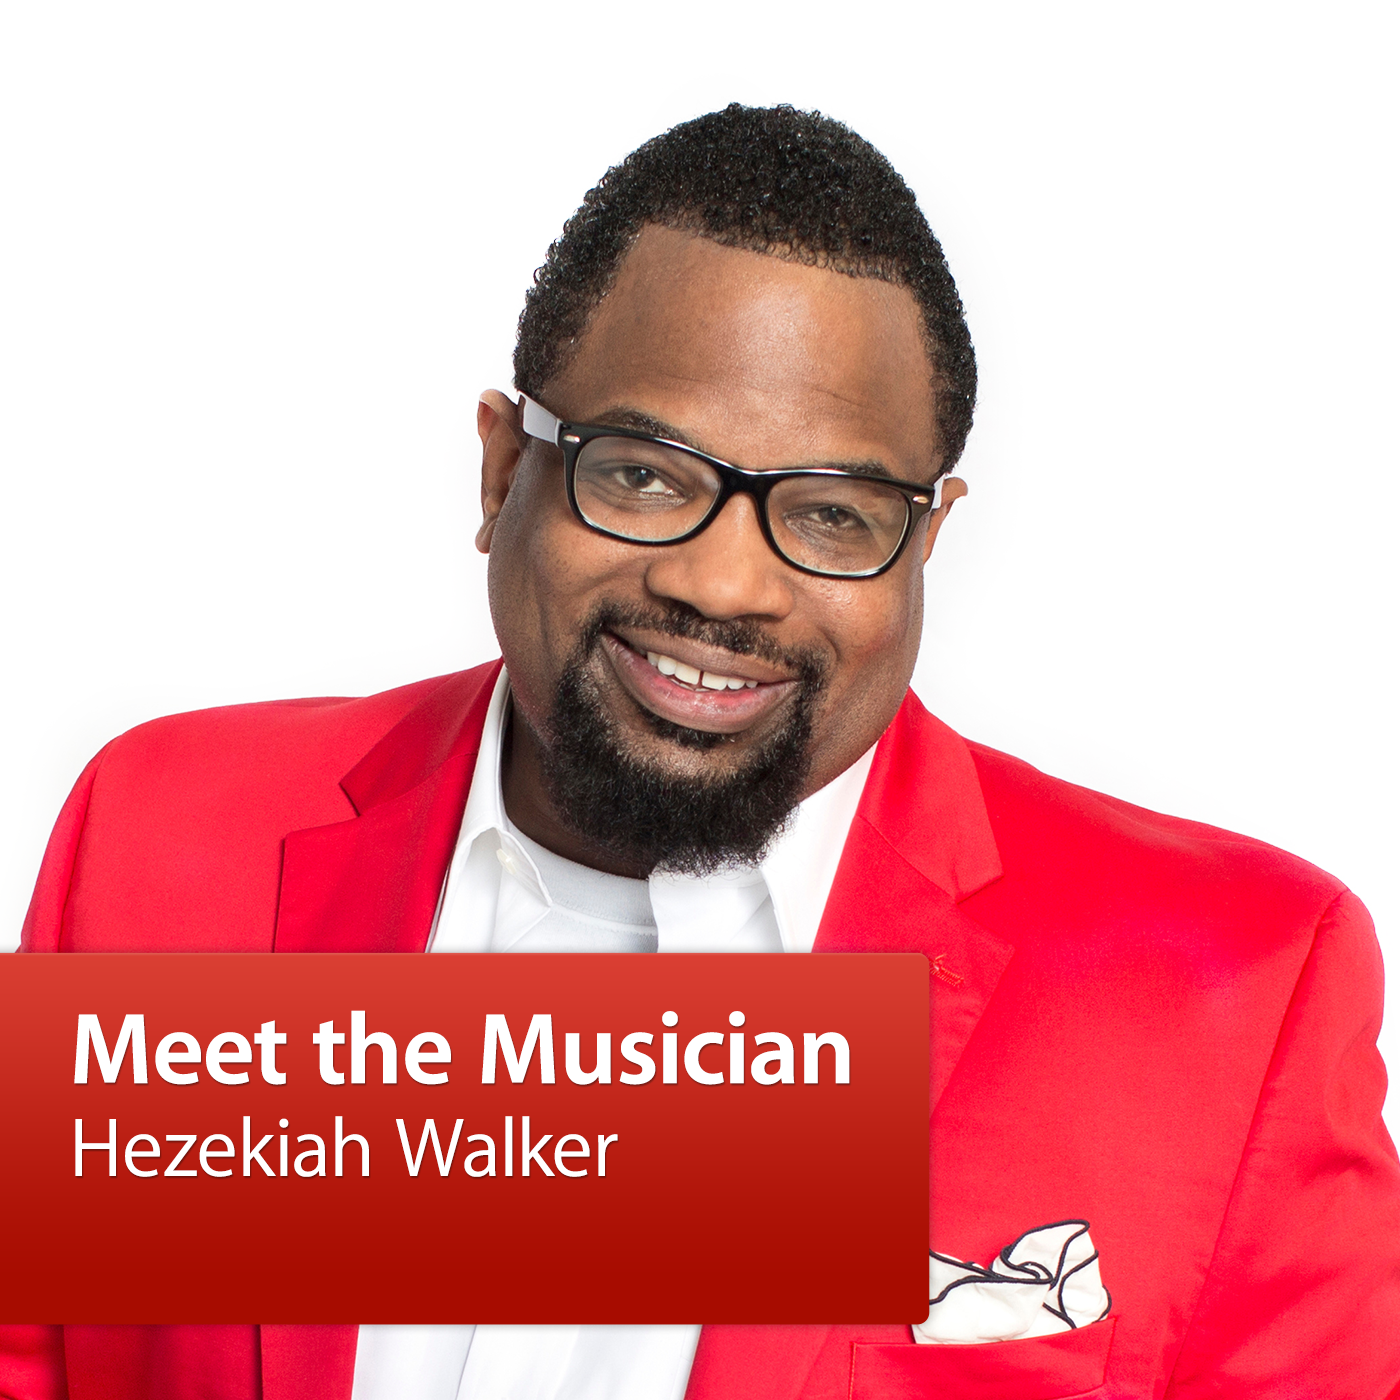 Hezekiah Walker: Meet the Musician